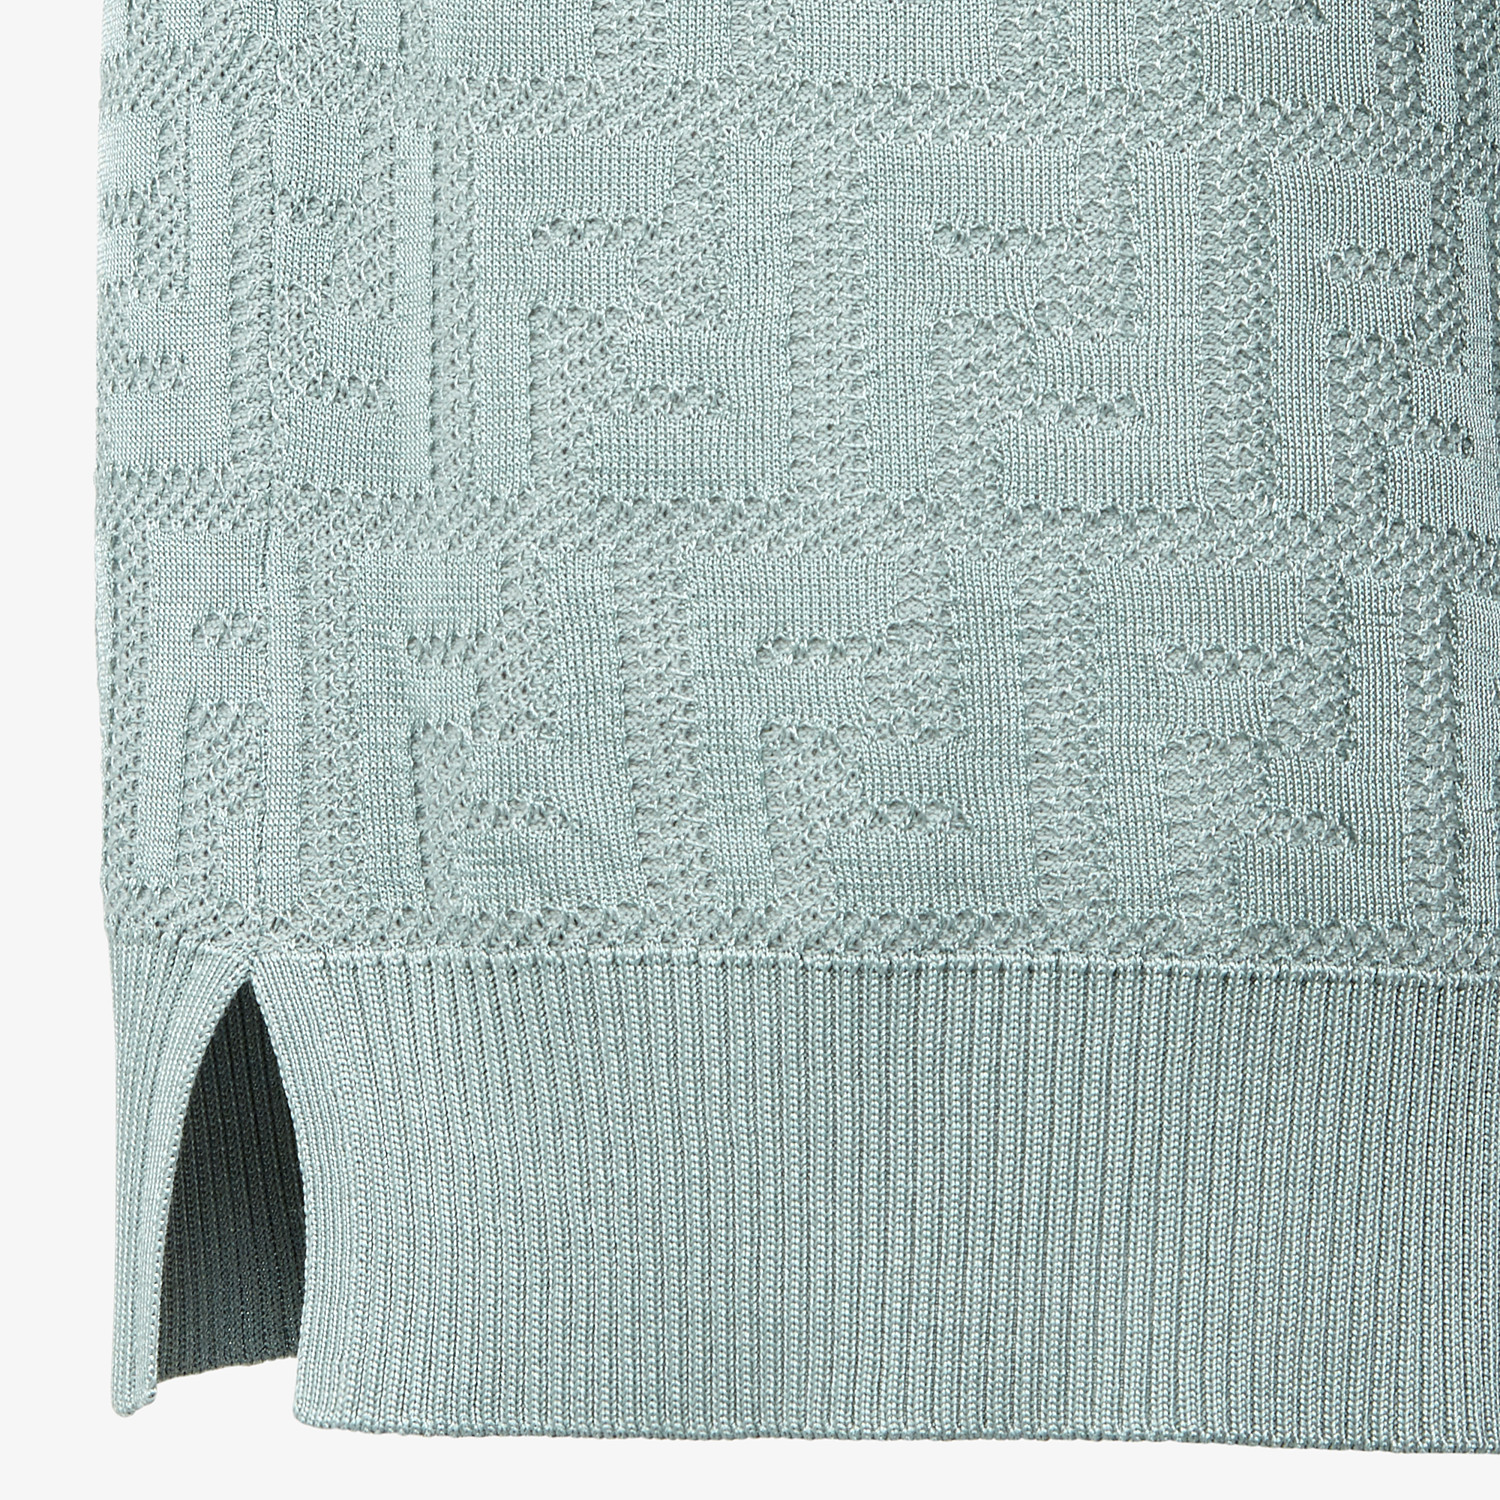 FENDI SWEATER - Light blue cotton and viscose sweater - view 3 detail